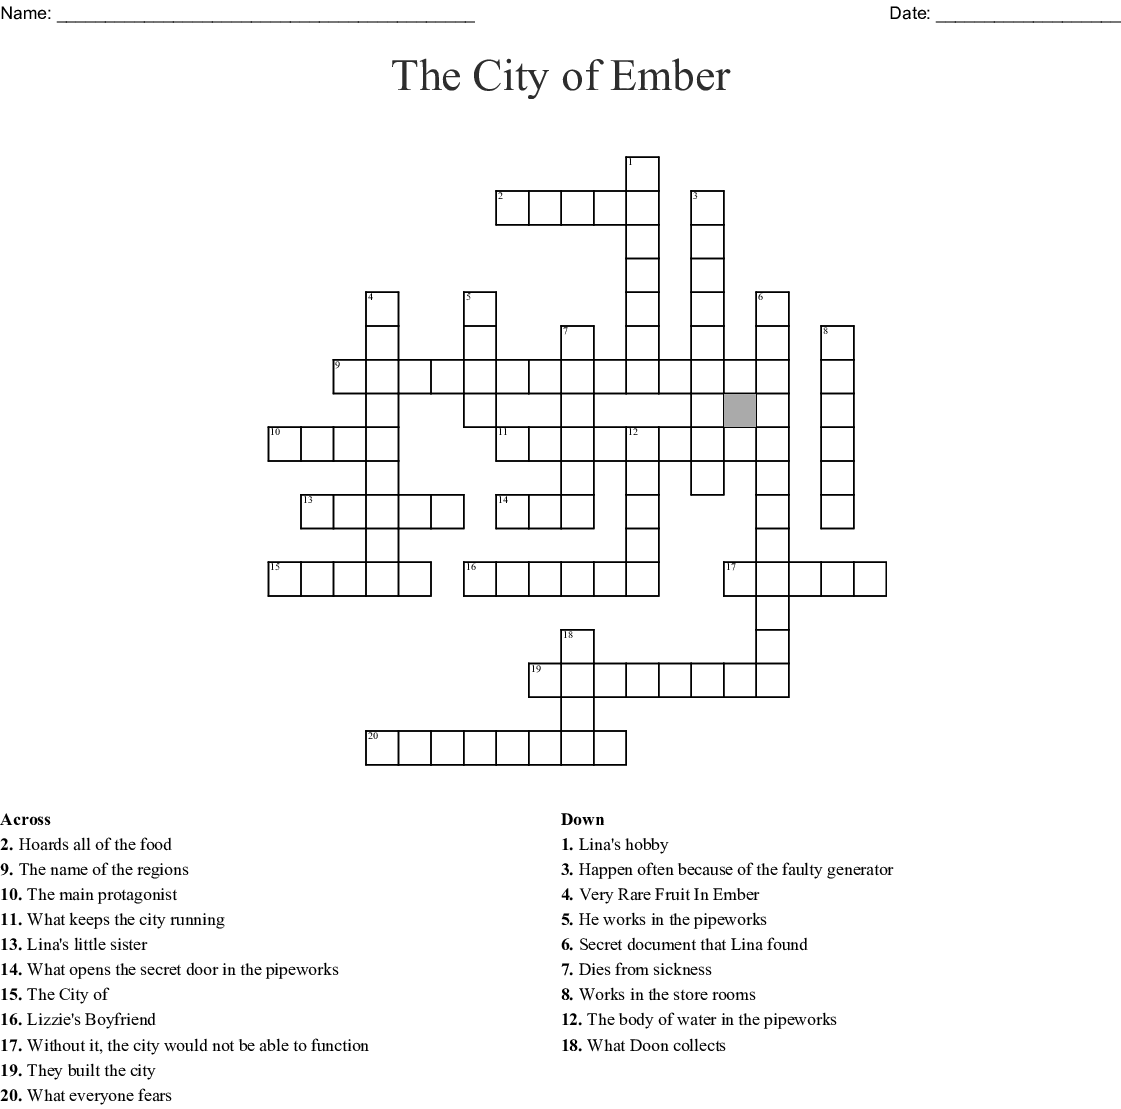 City Of Ember Crossword